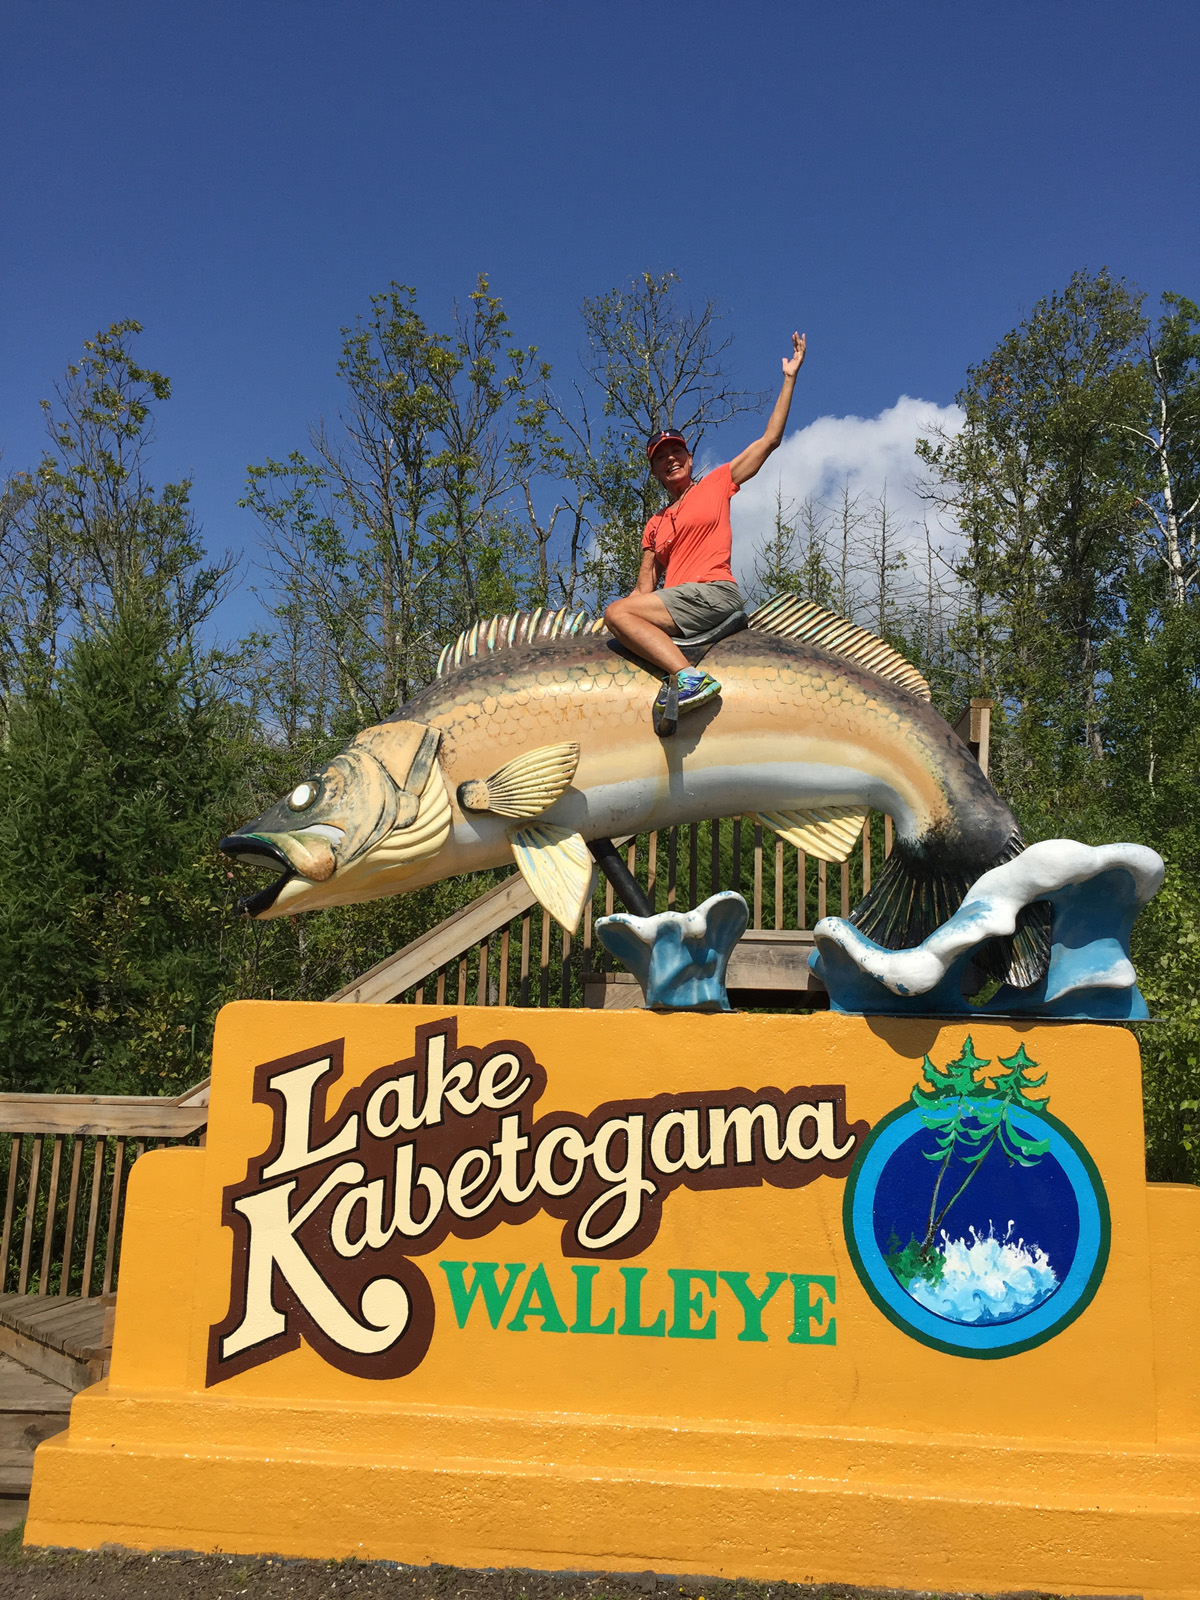 Terry chose to ride the wild Walleye during our  57th  park visit!